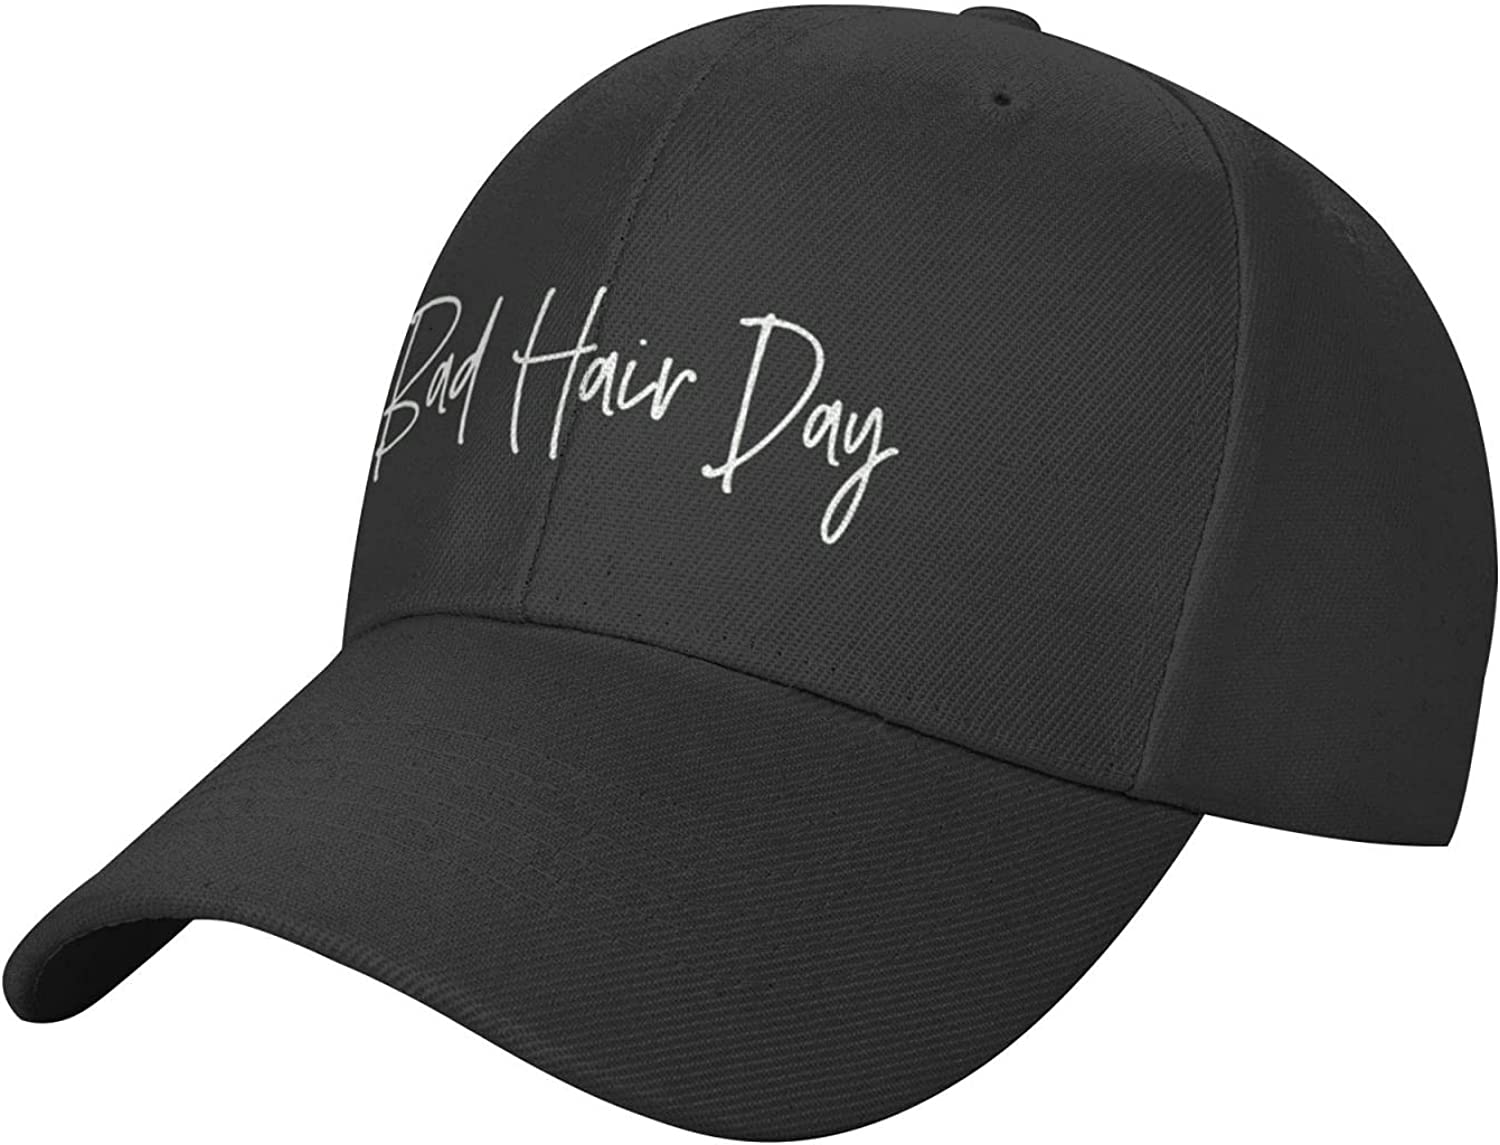 Today is My Bad Hair Day Hat, Adjustable Classic Baseball Cap, Sun Hats for Women& Men